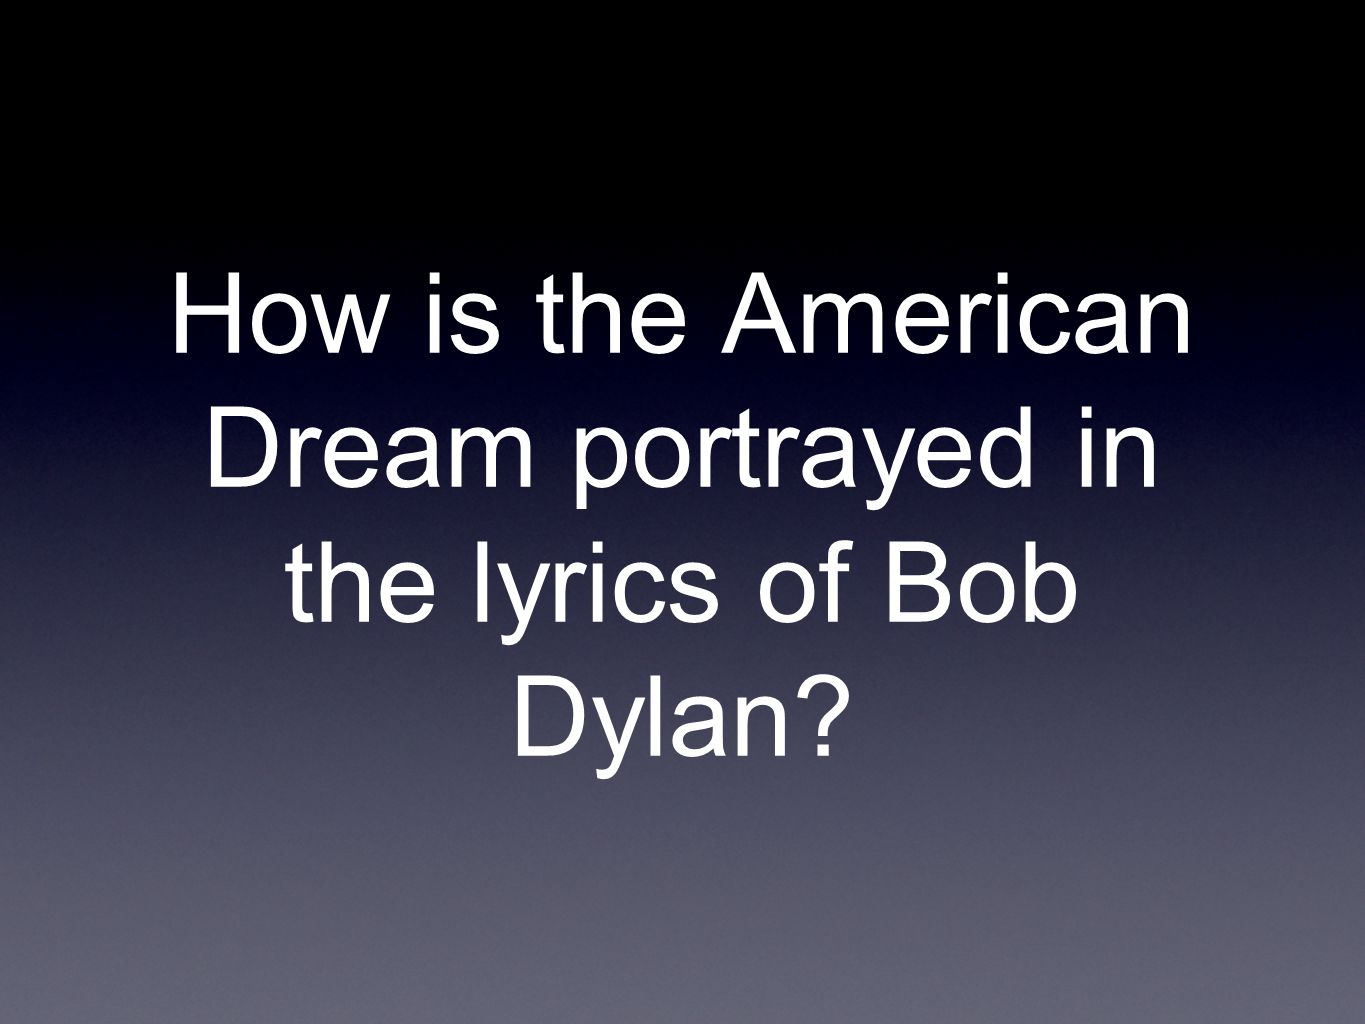 How is the American Dream portrayed in the lyrics of Bob Dylan